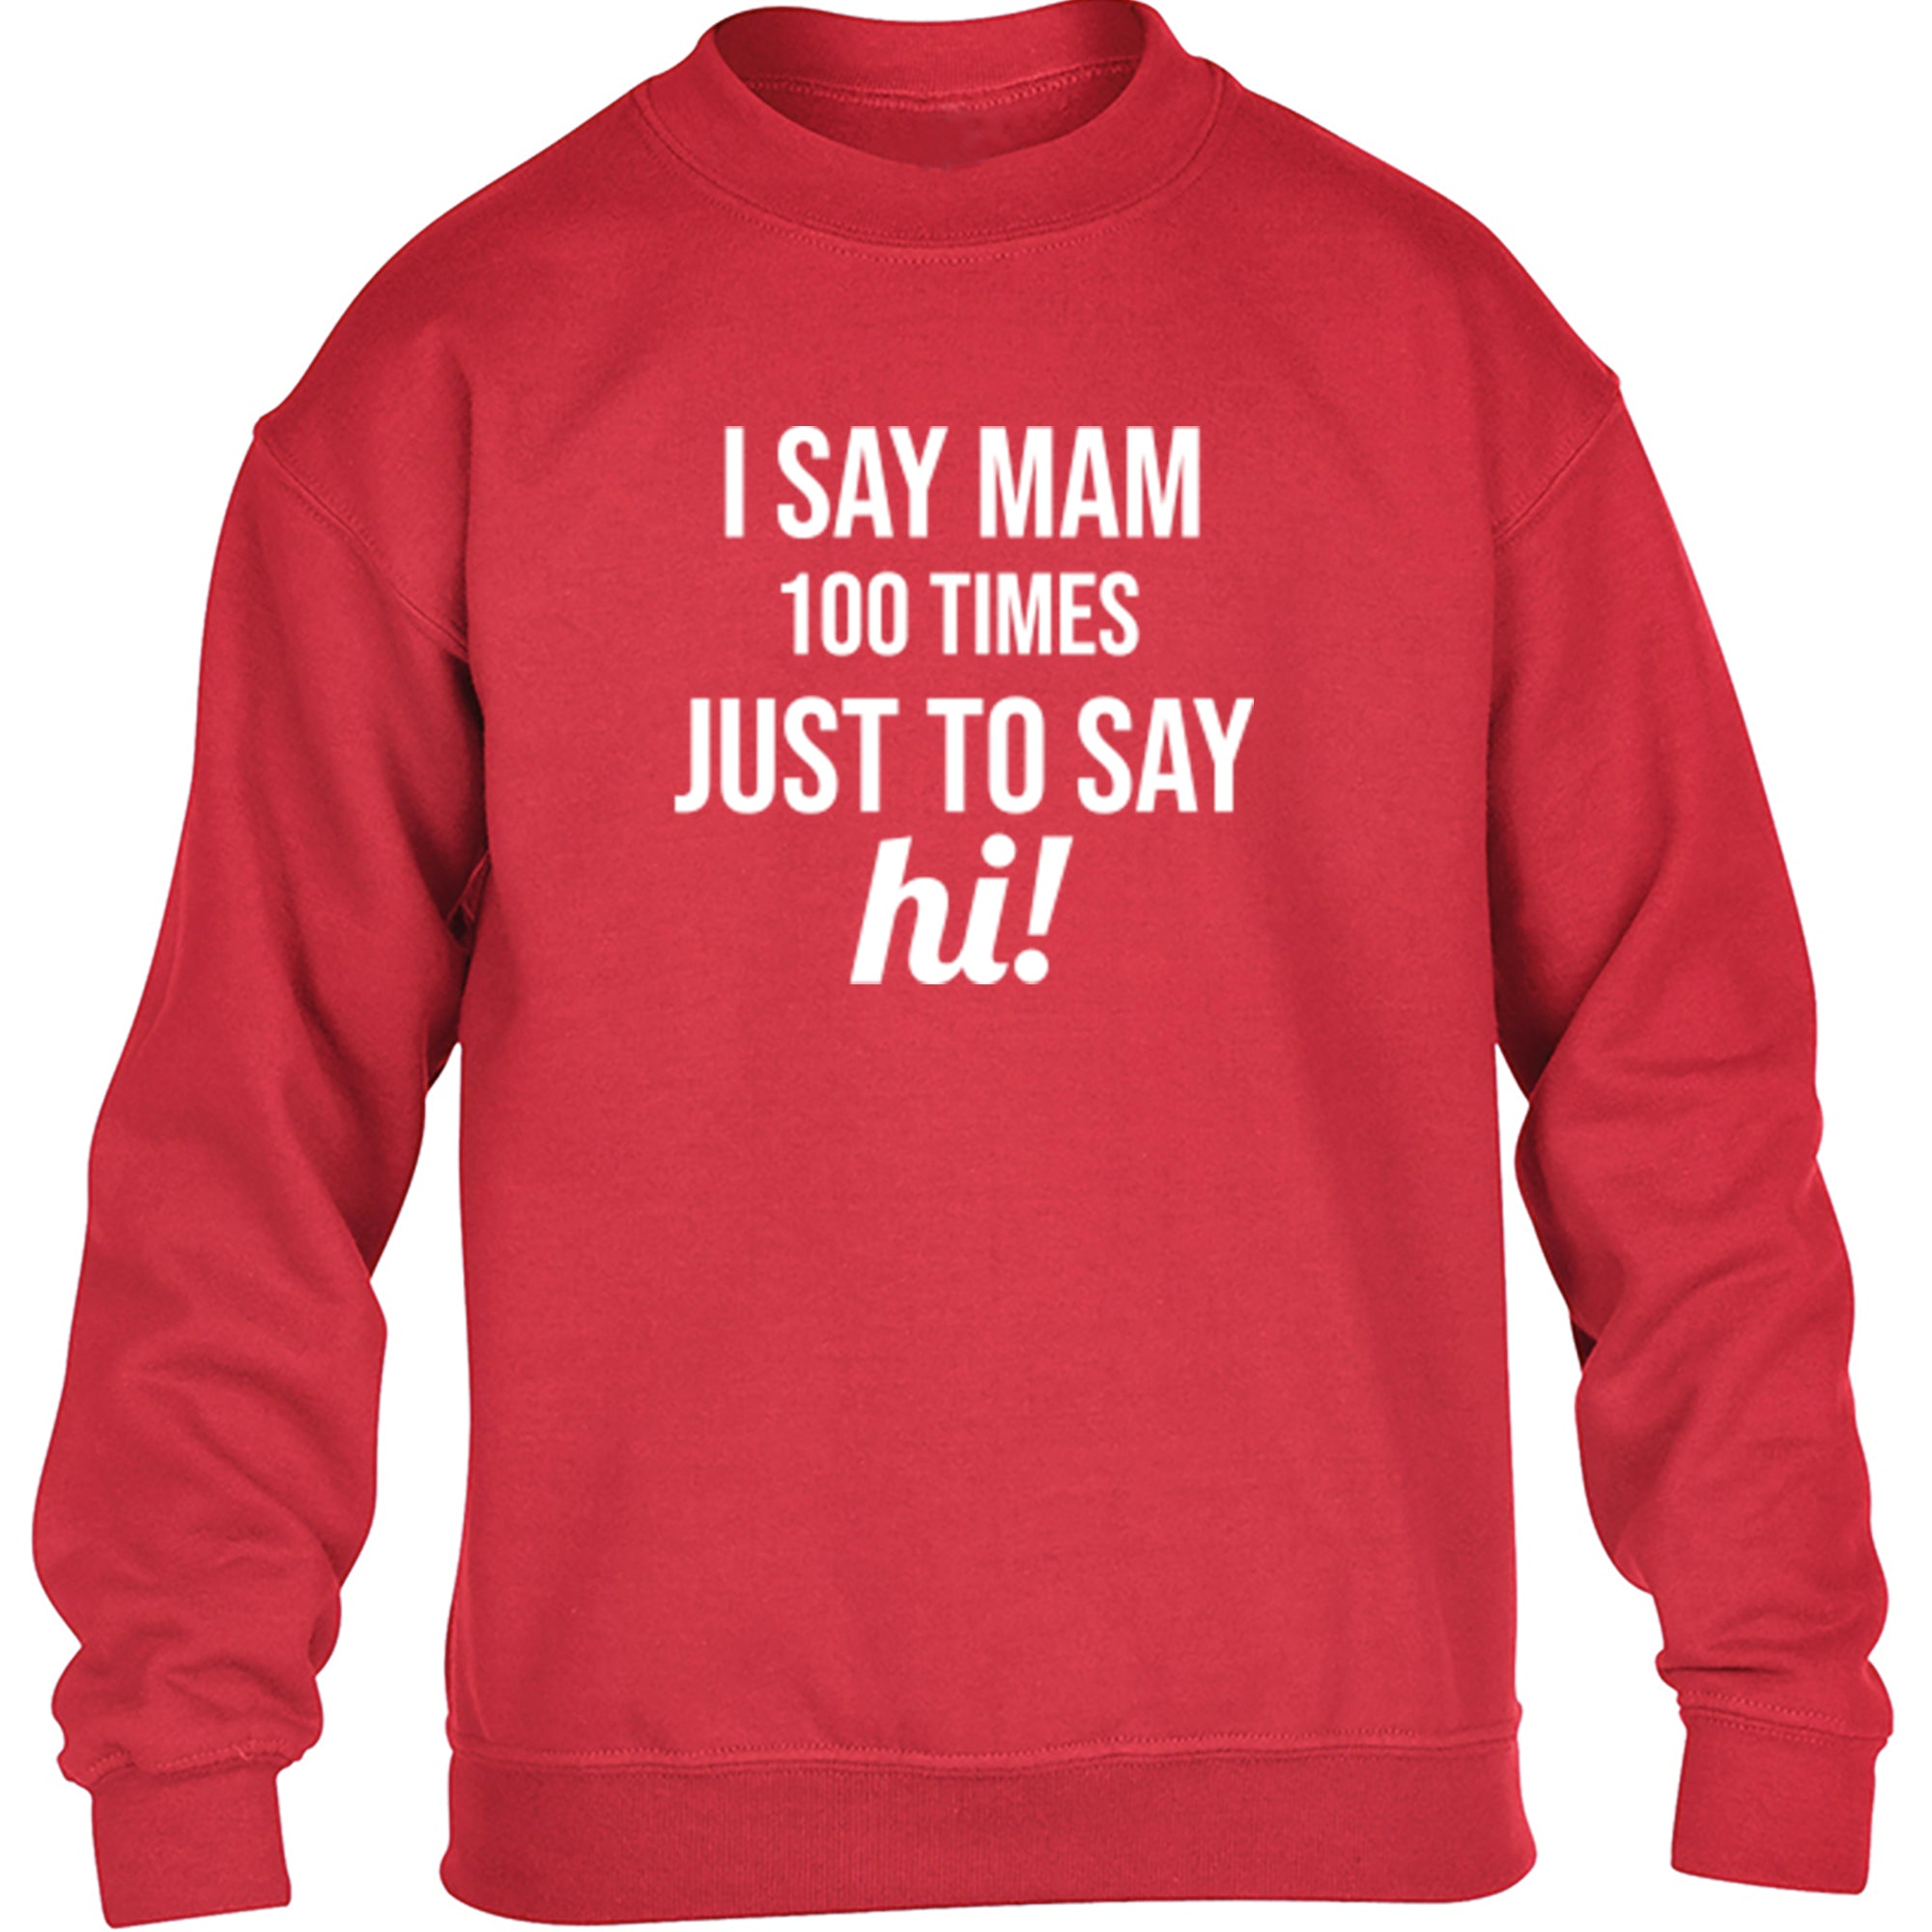 I Say Mam 100 Times Just To Say Hi! Childrens Ages 3/4-12/14 Unisex Jumper S0353 - Illustrated Identity Ltd.